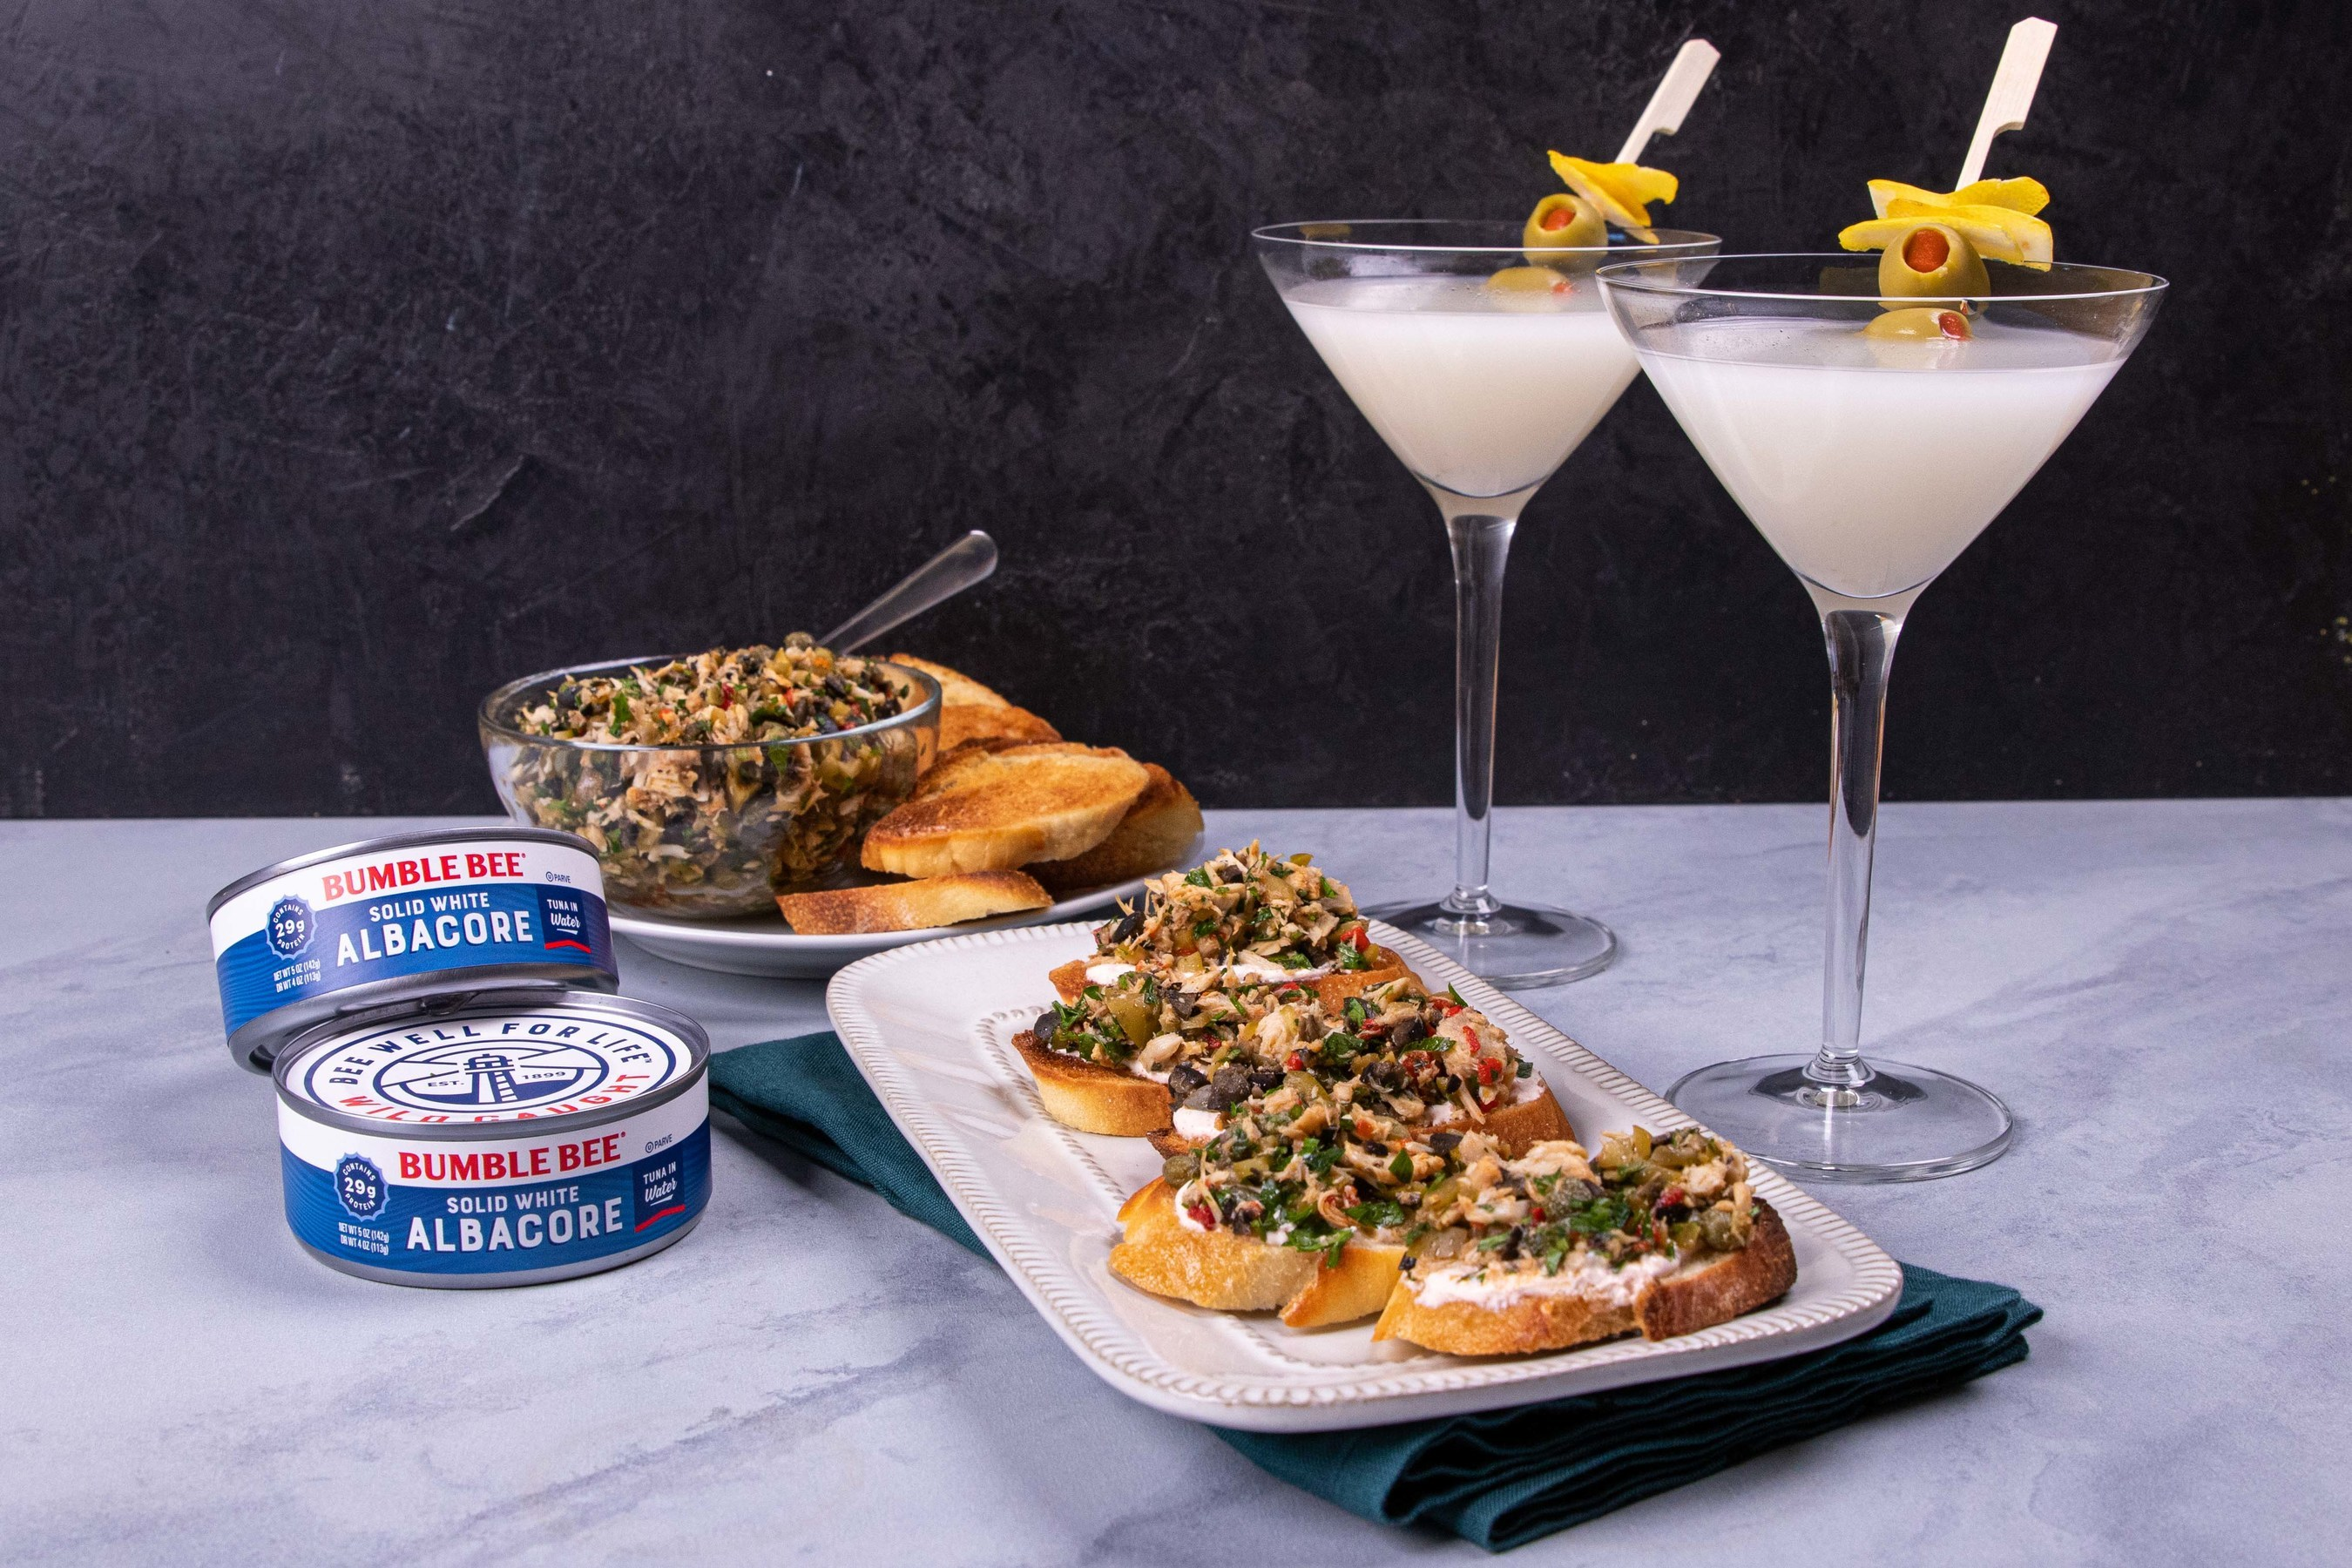 Bumble Bee, Foodbeast Team Up to Spice Up Beloved Regional Dishes